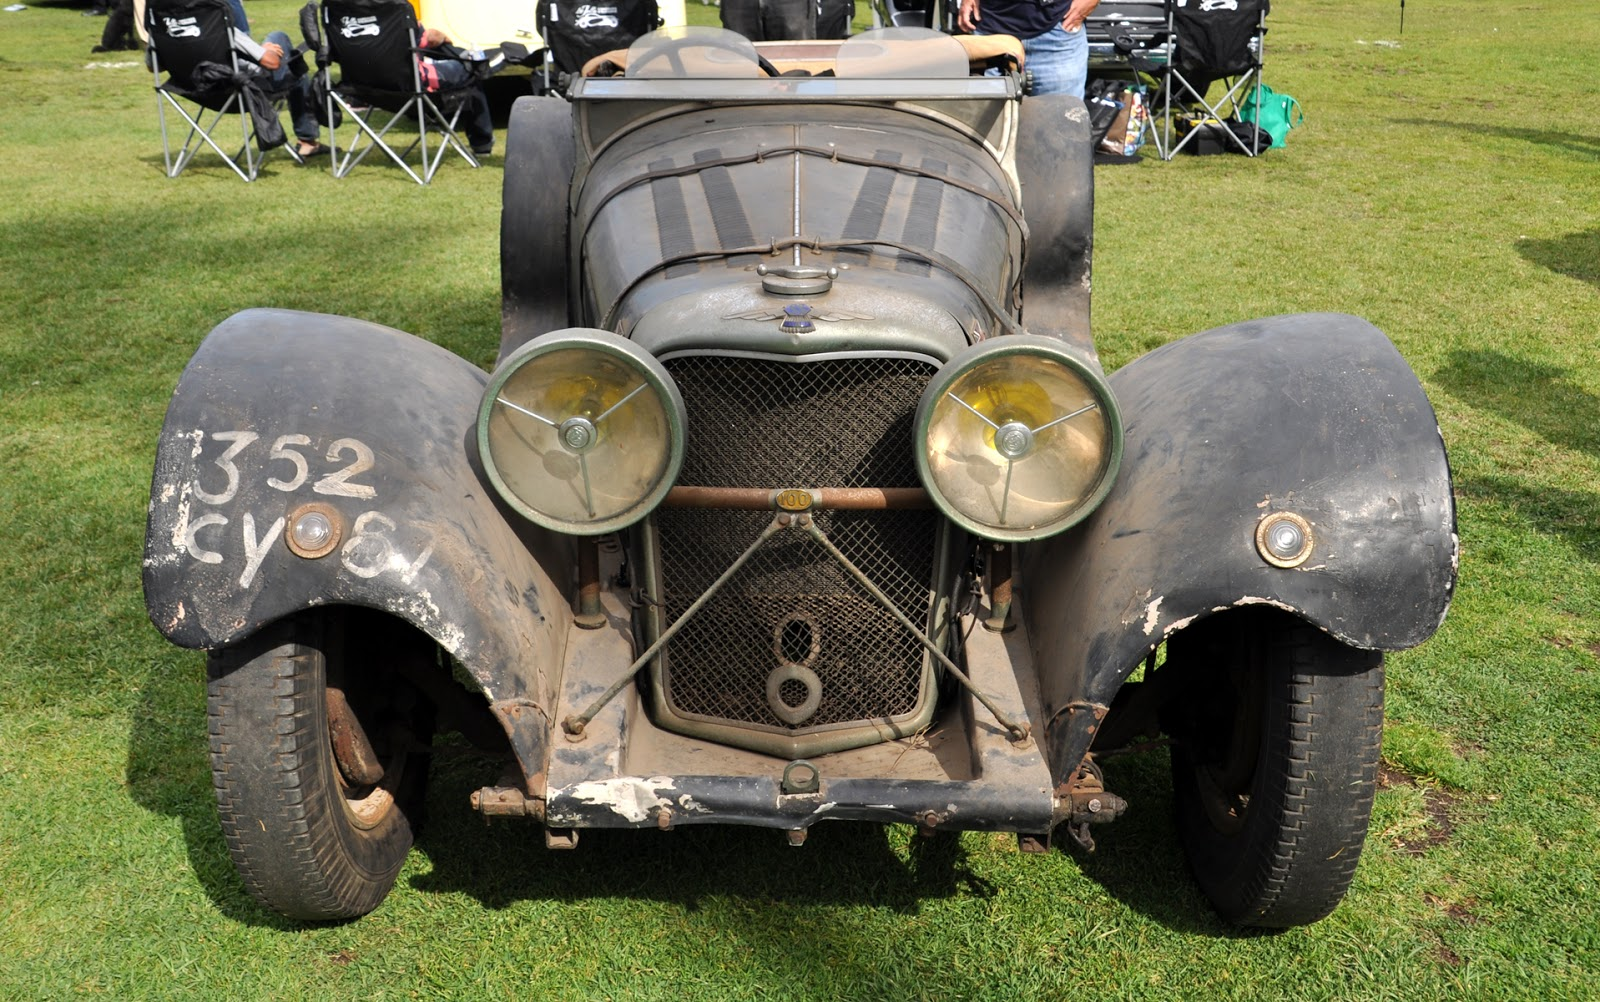 1936 Jaguar SS 100, barnfind. It was in a French barn, neglected ...